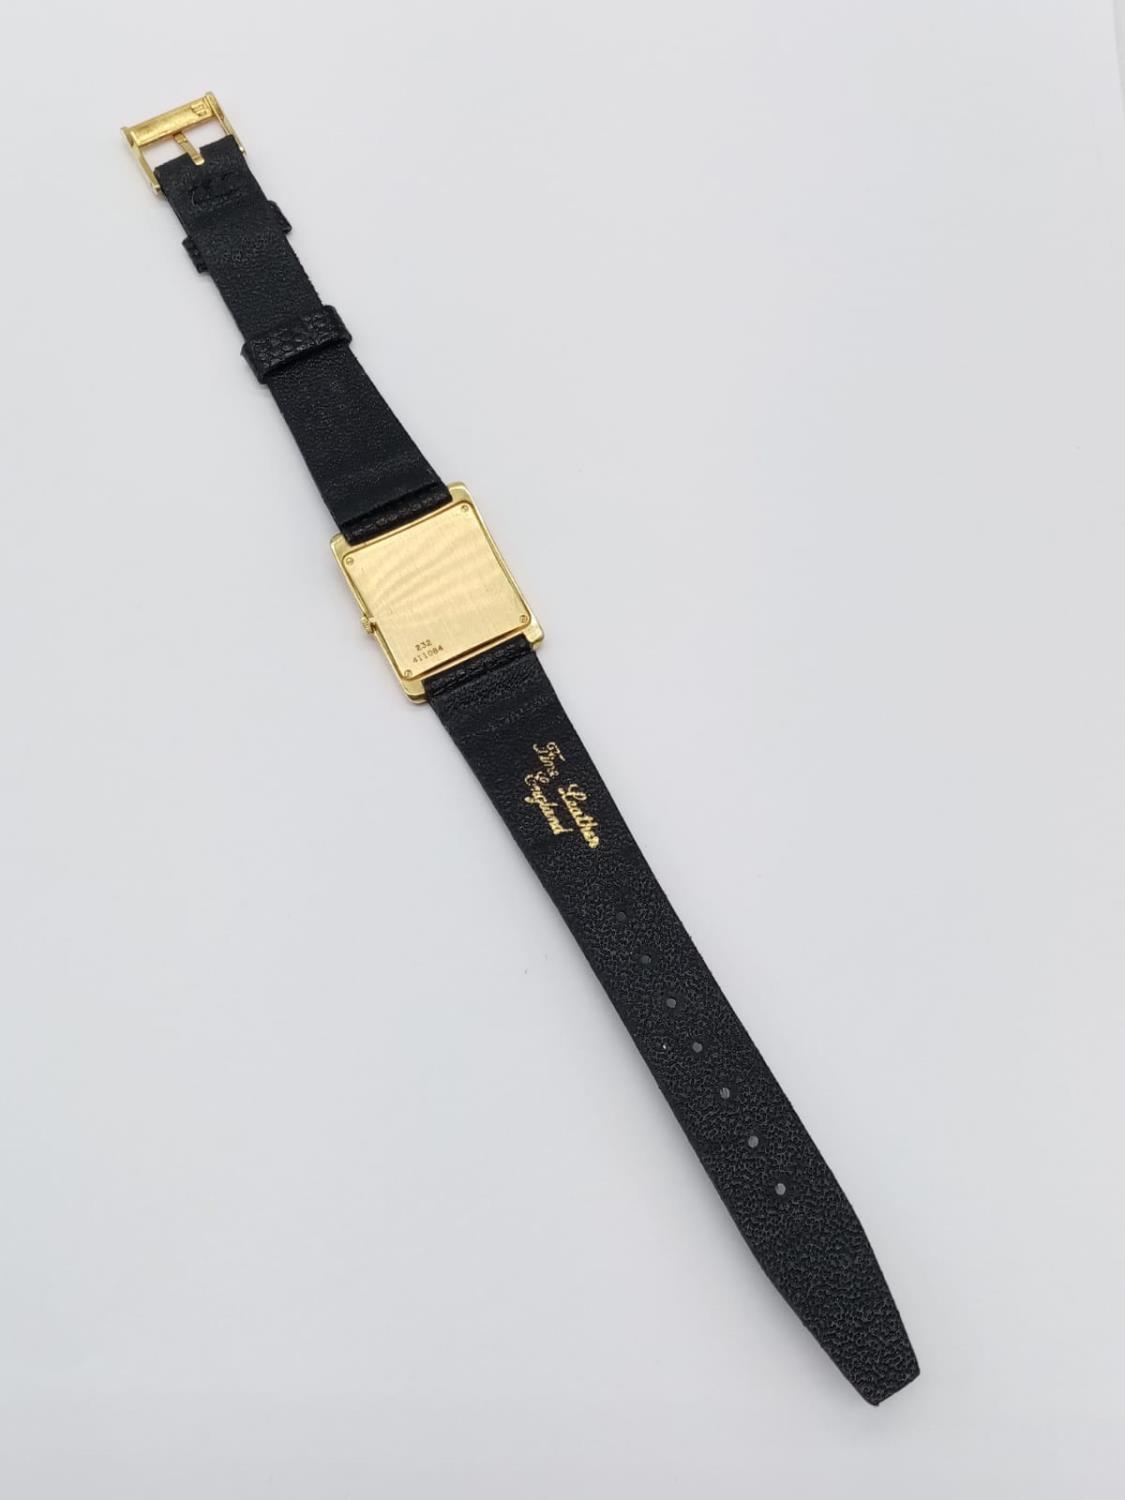 Vintage Plaget 18ct gold ladies watch with square face (22mm) and leather strap - Image 6 of 10